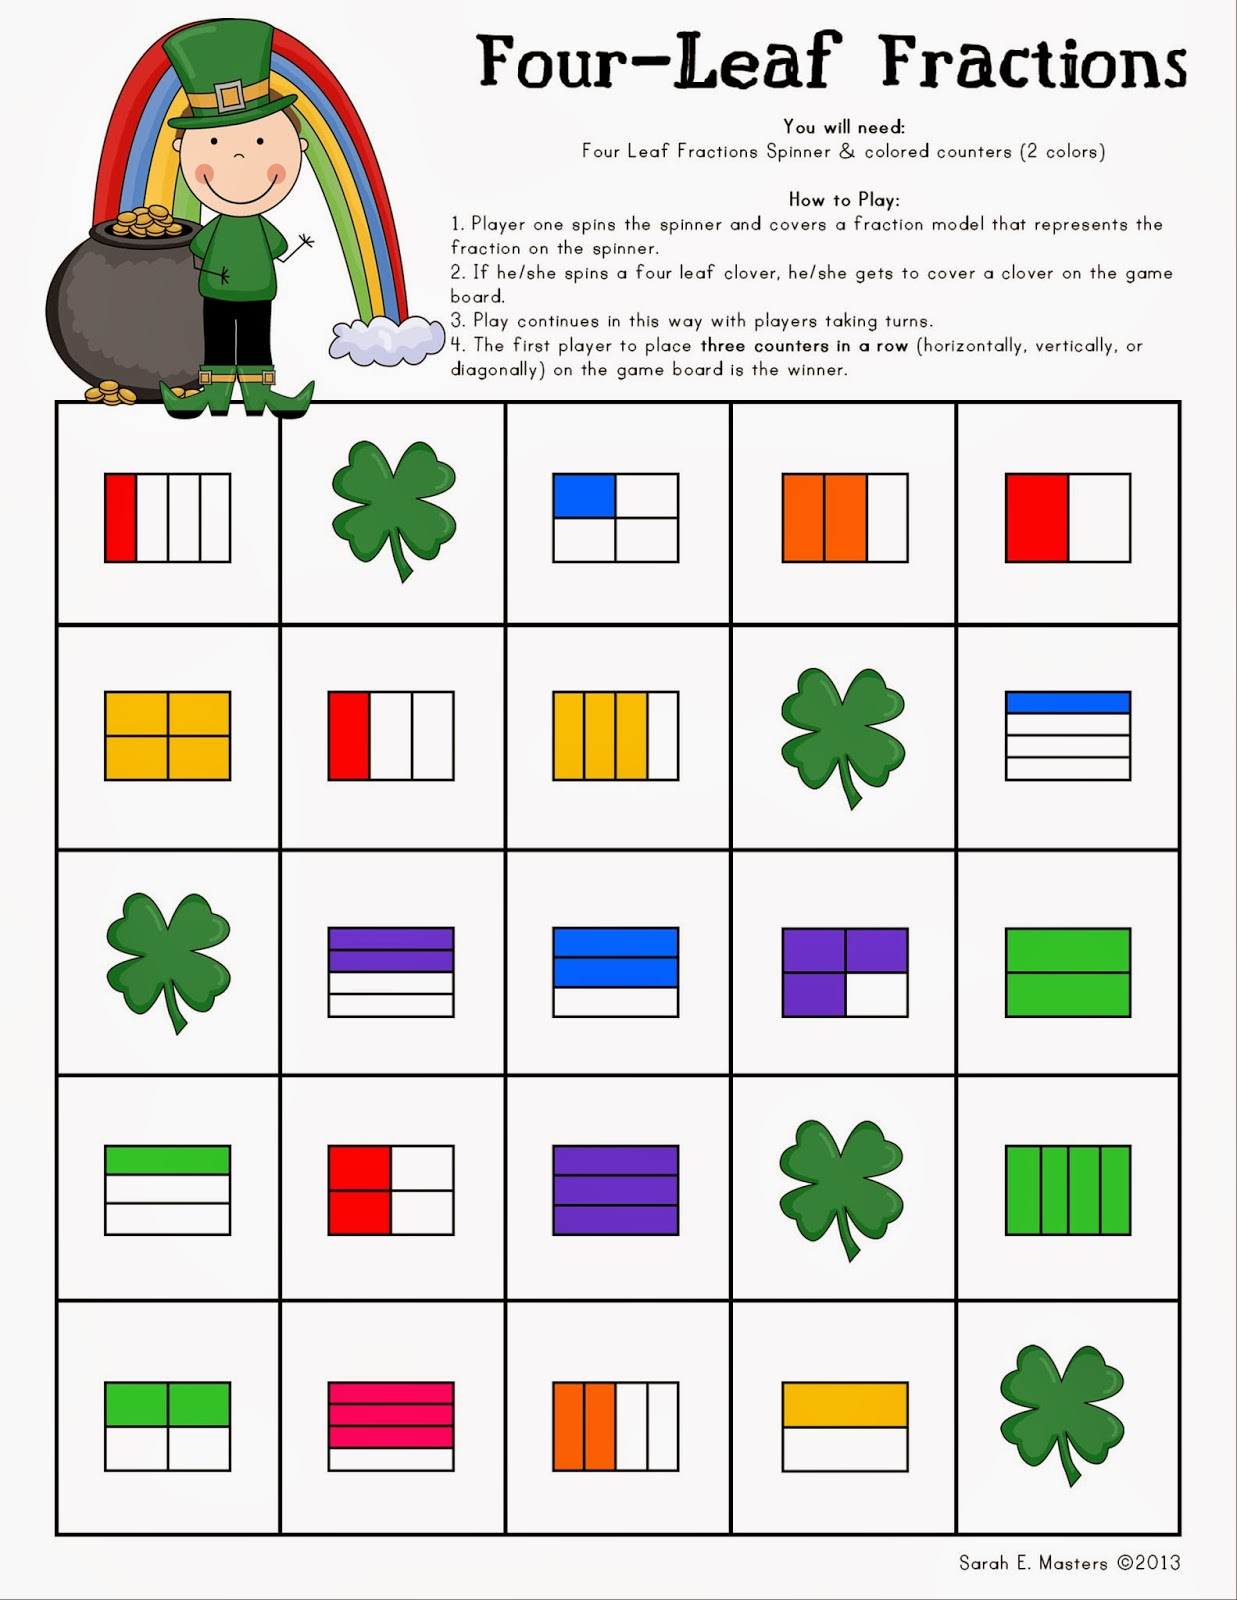 http://www.teacherspayteachers.com/Product/St-Patricks-Day-Fraction-Math-Game-Four-Leaf-Fractions-Game-602480